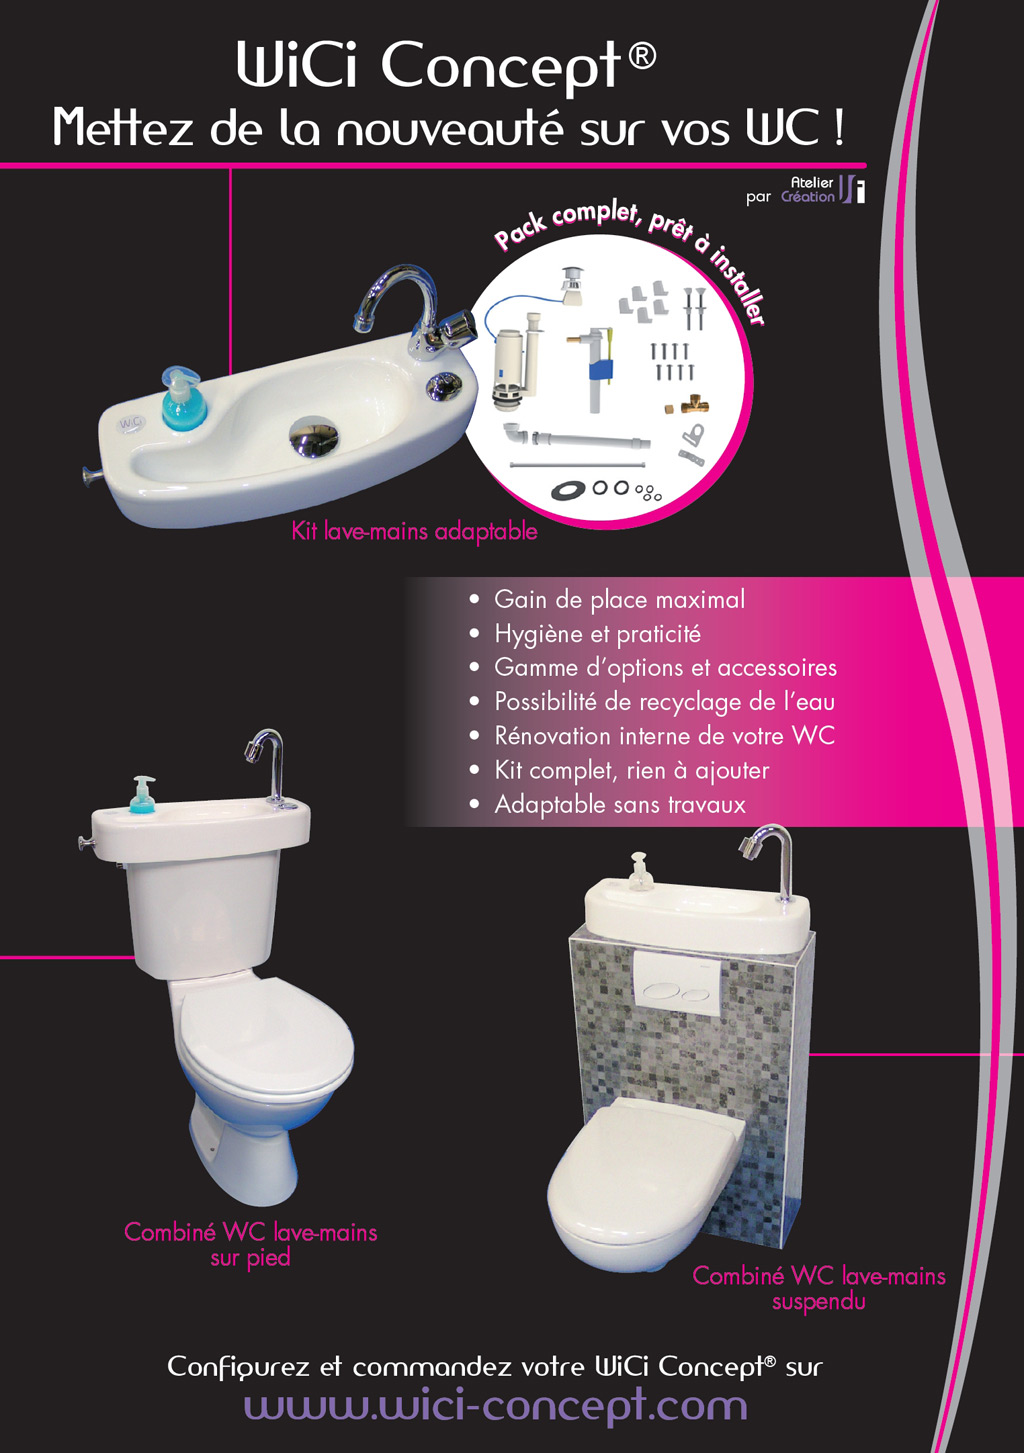 Kit Lave Main Adaptable Wc Wici Concept The Press About The Toilets With Wash Basin